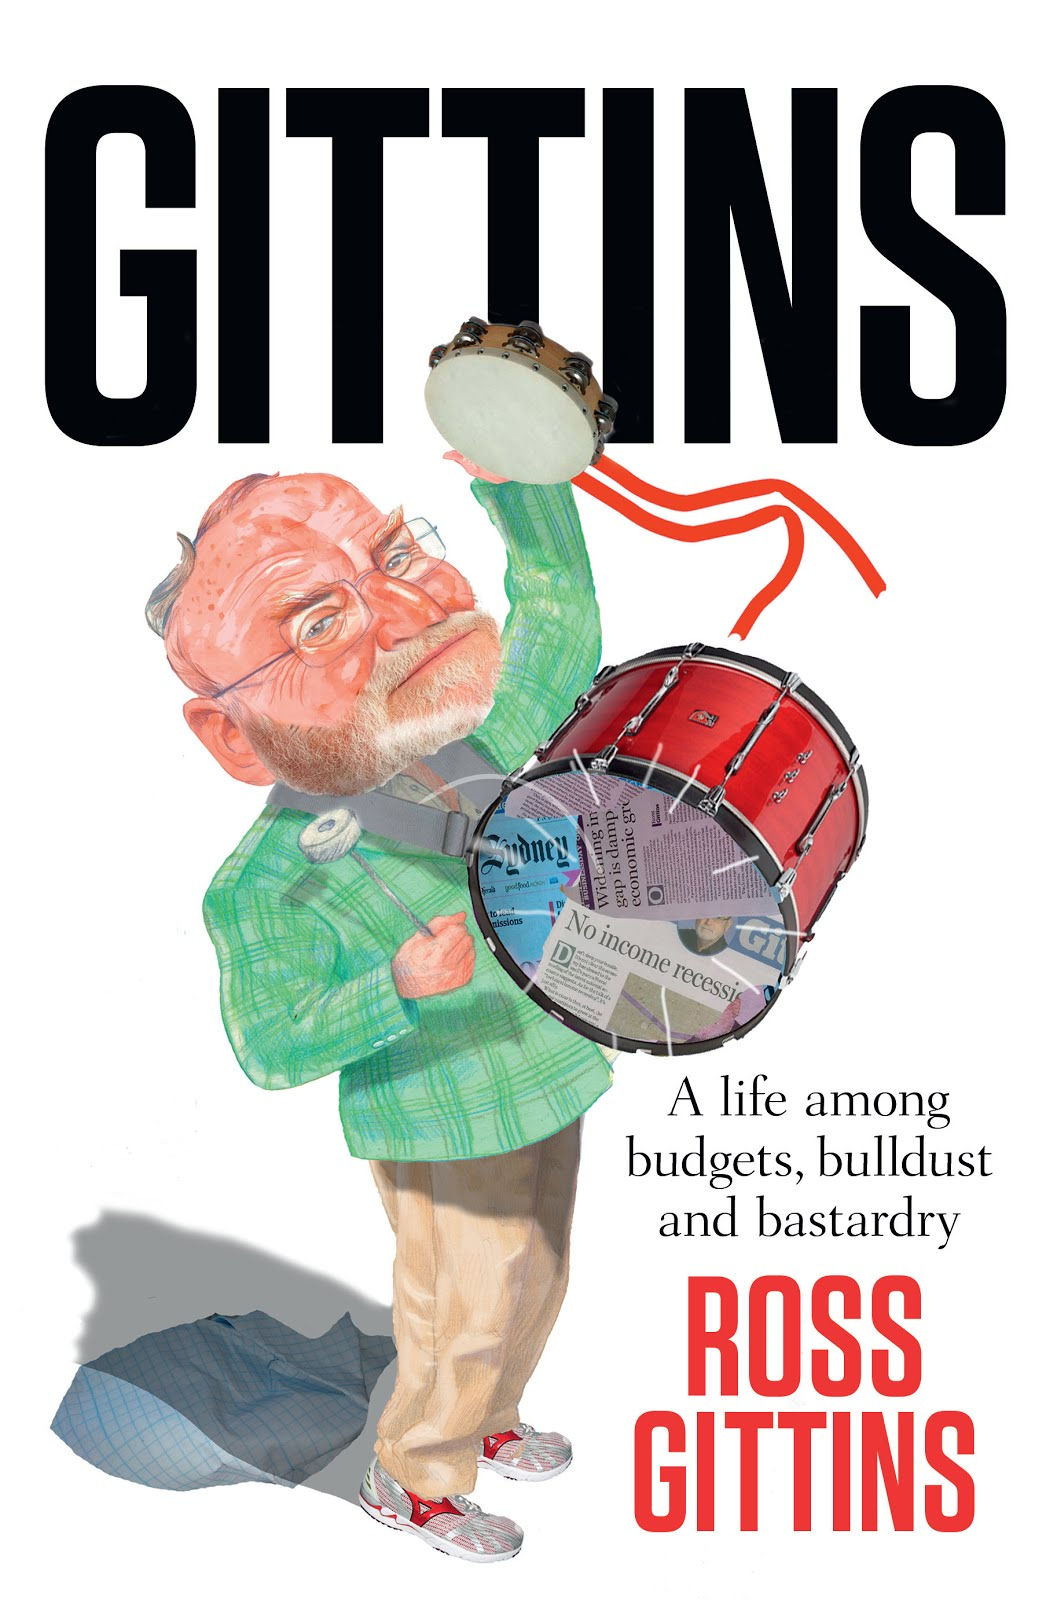 "<a href=""http://www.rossgittins.com/p/about-ross.html"">Ross Gittins</a>"